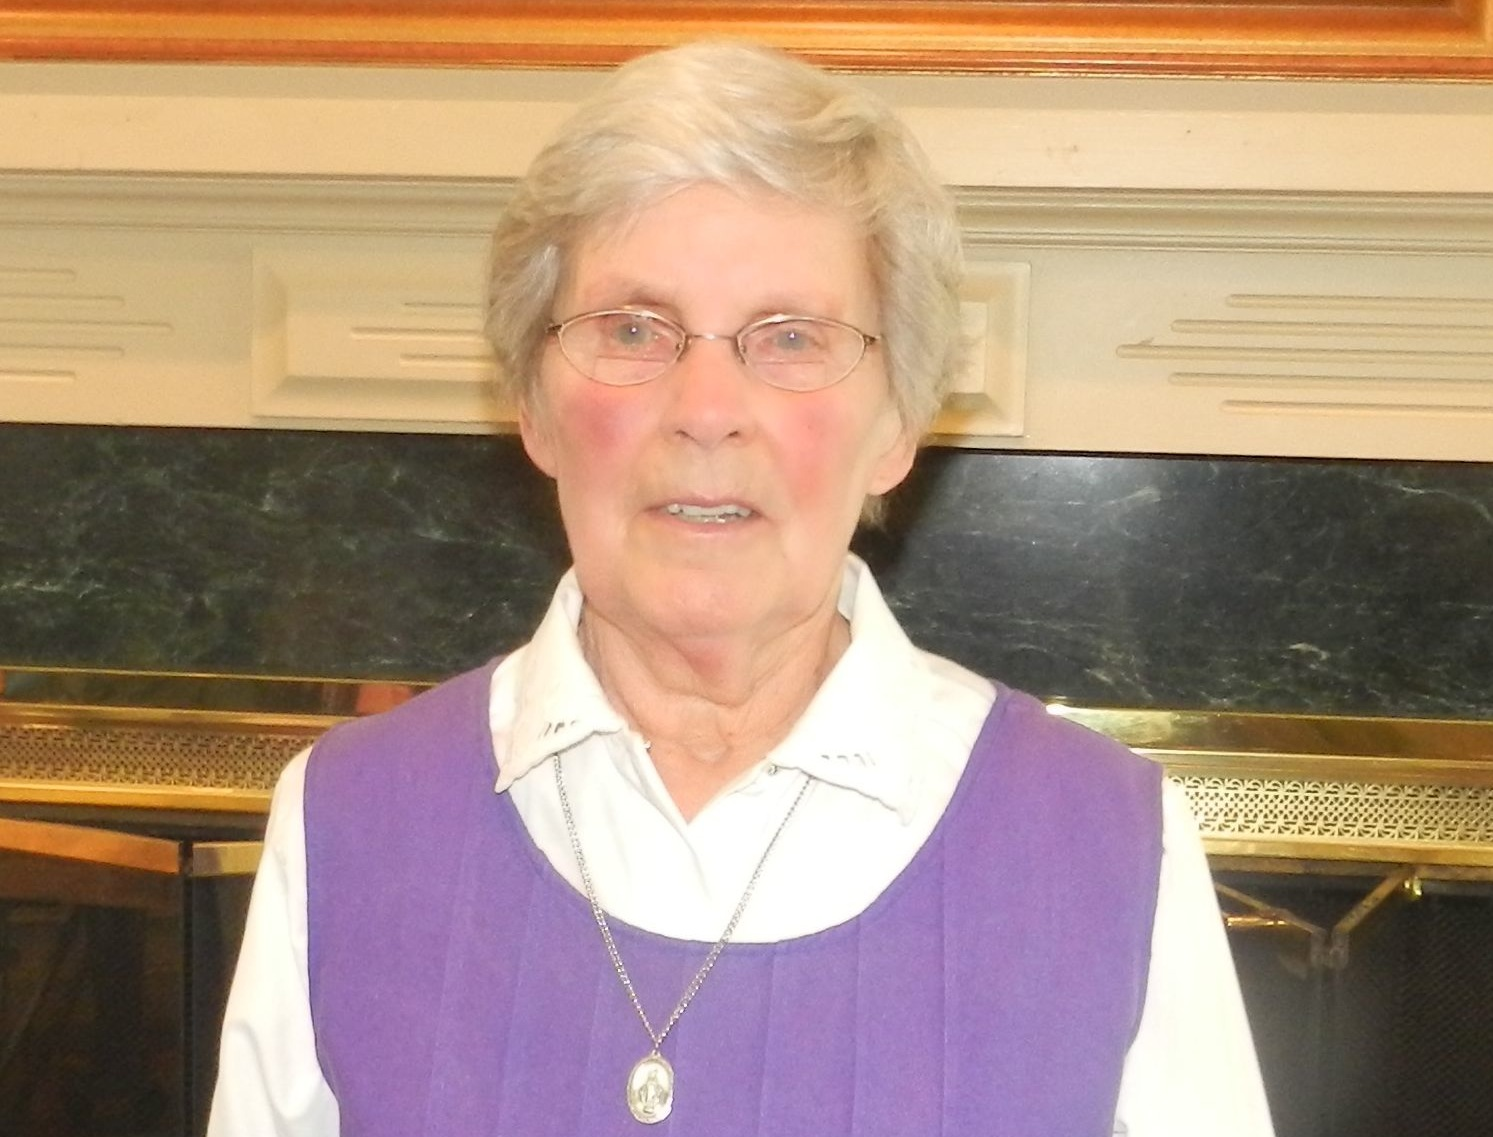 Ann Gallagher was the recipient of the third annual Outstanding Volunteer Award in Honor of Ruth Woolery. A resident of Lewiston, Ann has been a volunteer for 18 years at the information desk and in patient resource management.